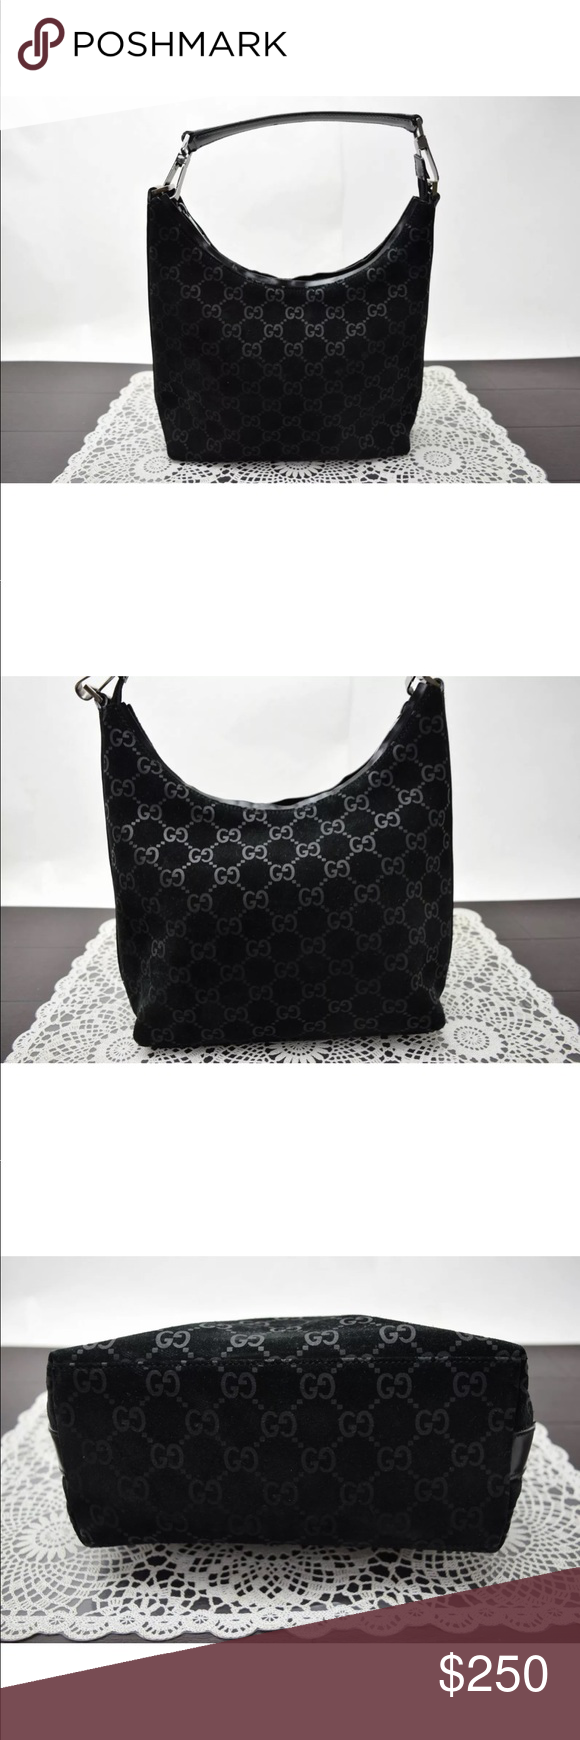 7499a3e54c4 Auth Gucci GG Ssima Black Suede   Leather bag Our items are all guaranteed  to be authentic. Our experienced team has checked and confirmed the  authenticity.